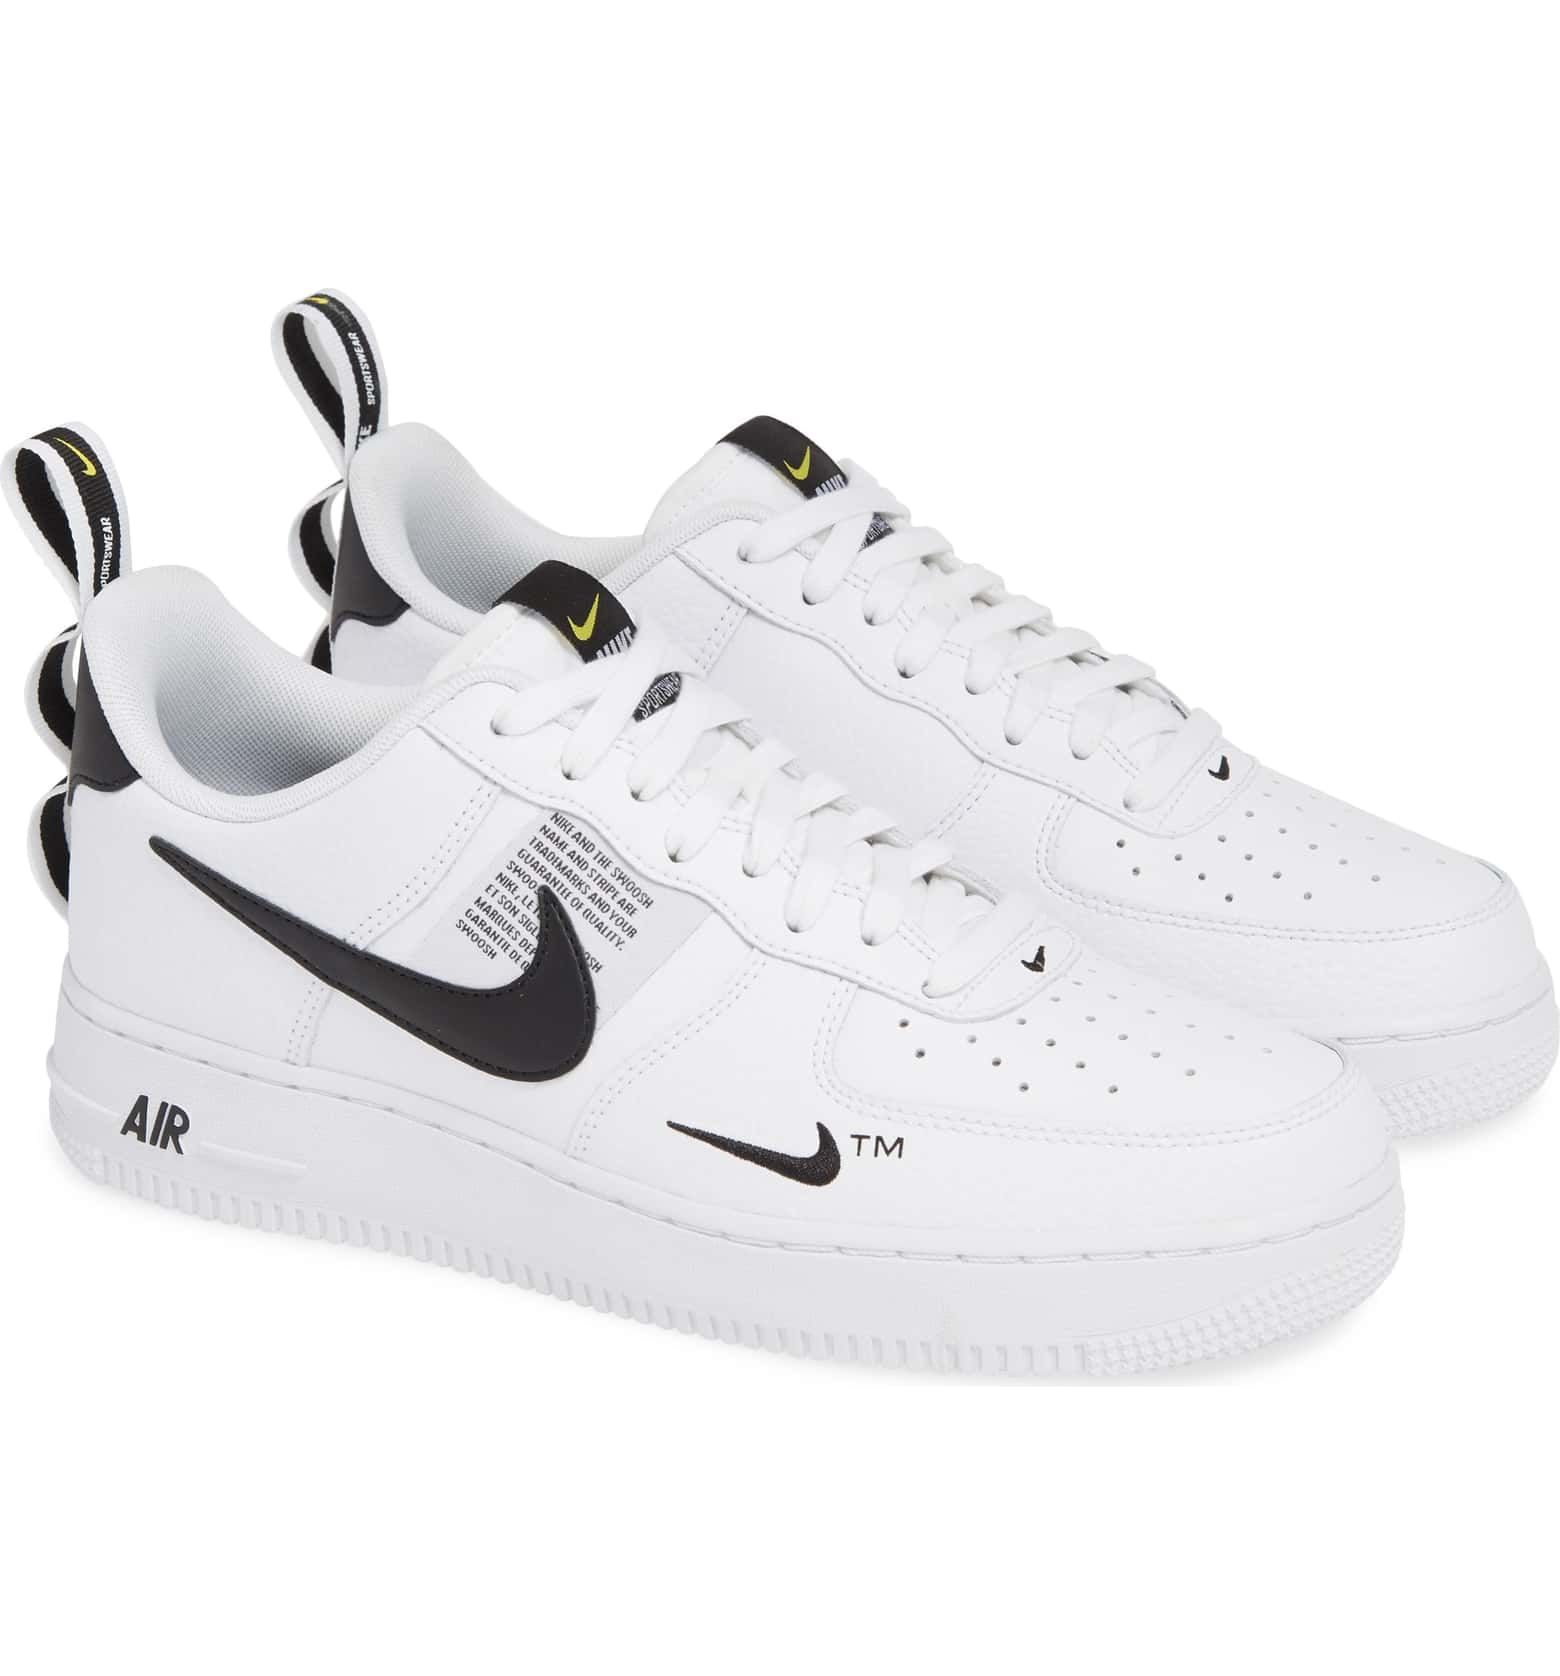 Wholesale Price Nike Air Force 1 07 Sneakers Haut Noir